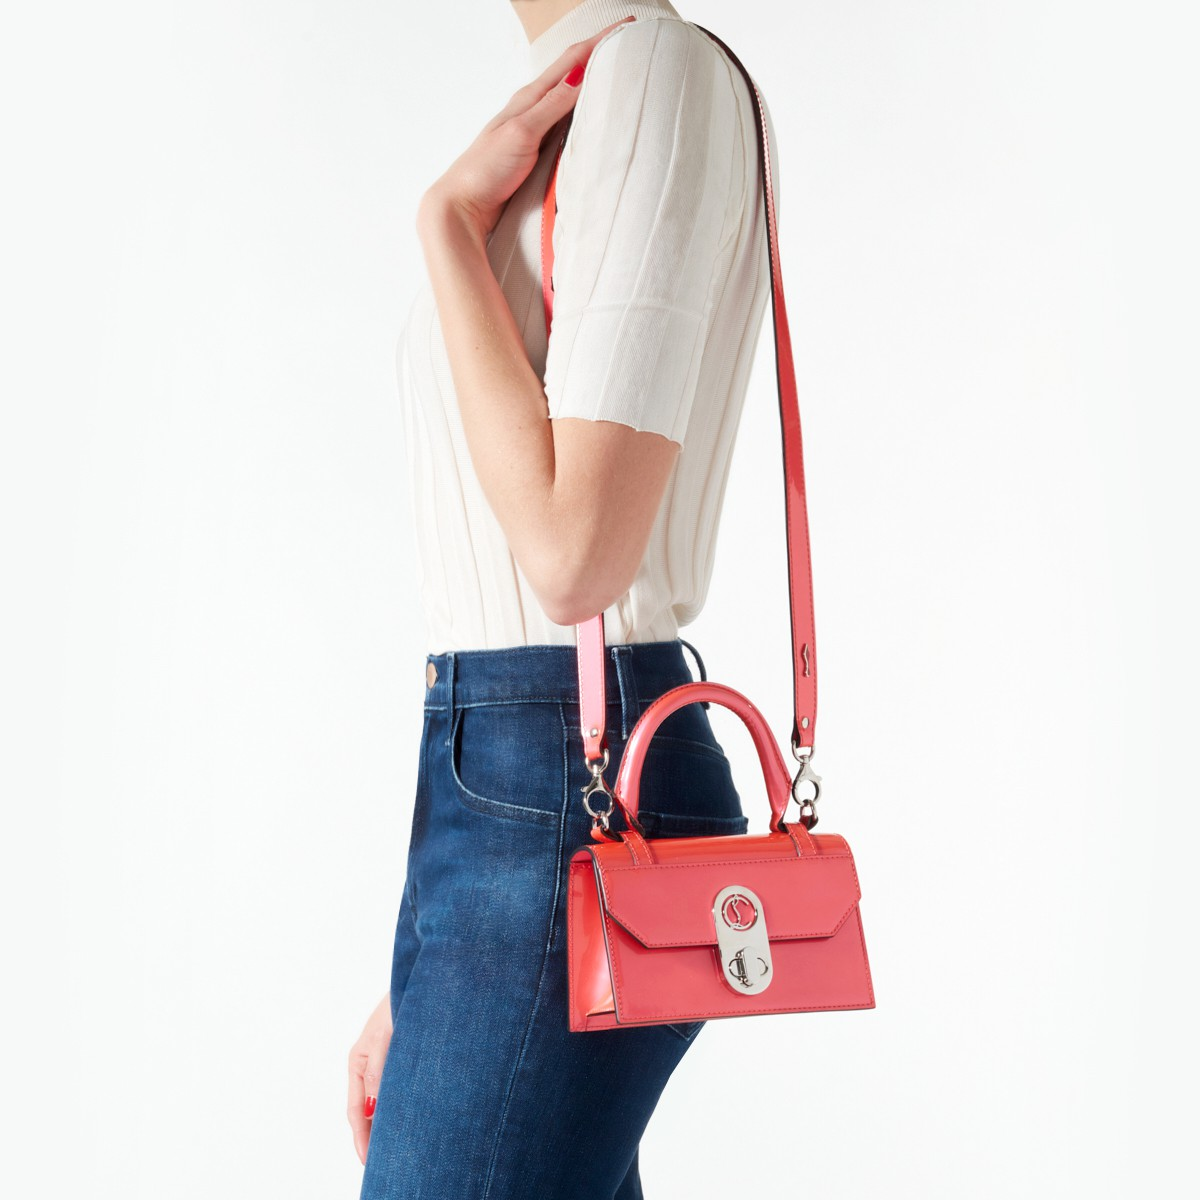 Bags - Elisa Top Handle Mini - Christian Louboutin